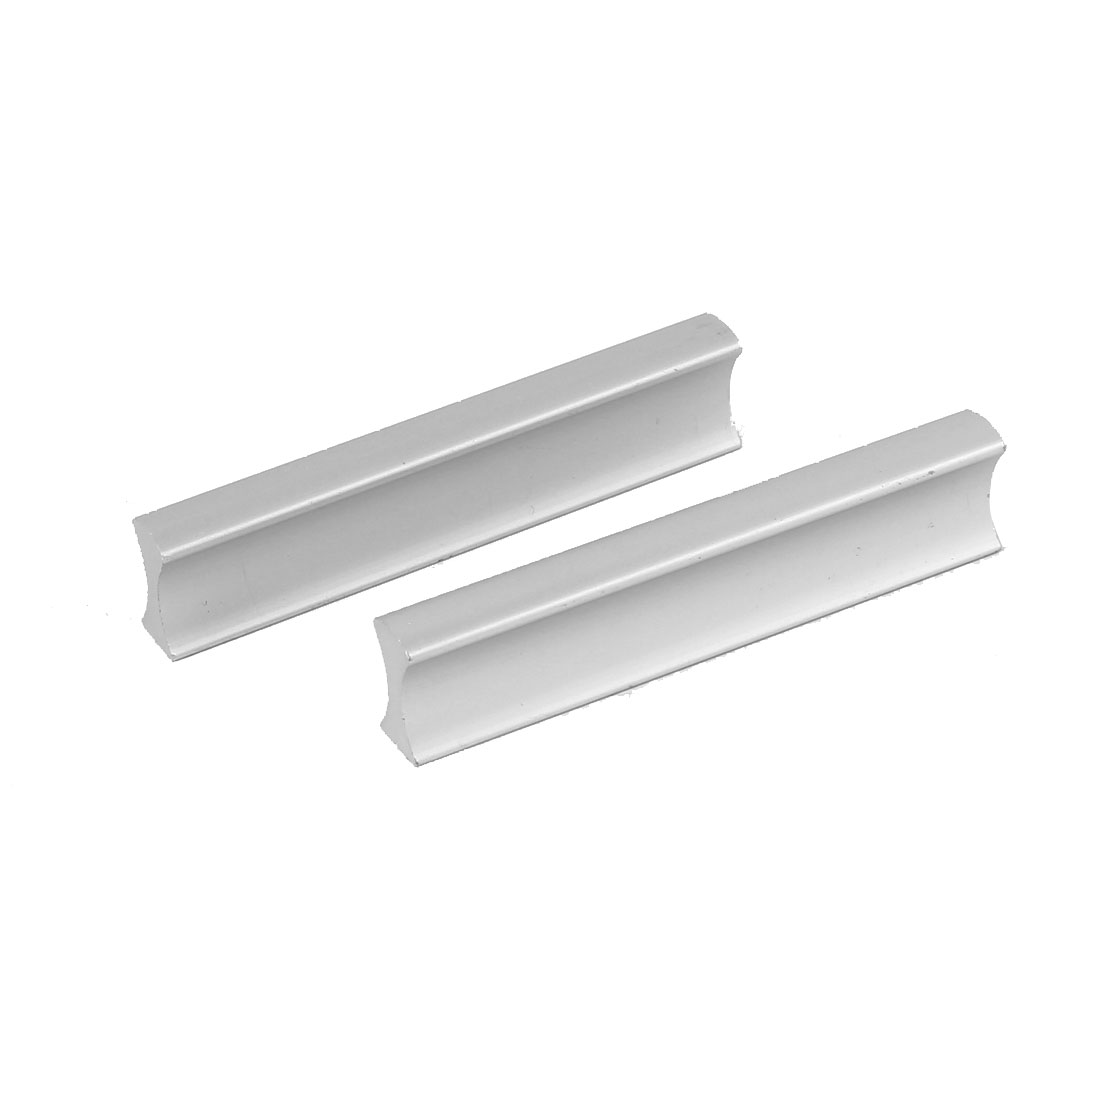 74mm Length Cupboard Cabinet Drawer Rectangle Metal Pull Handle 2pcs